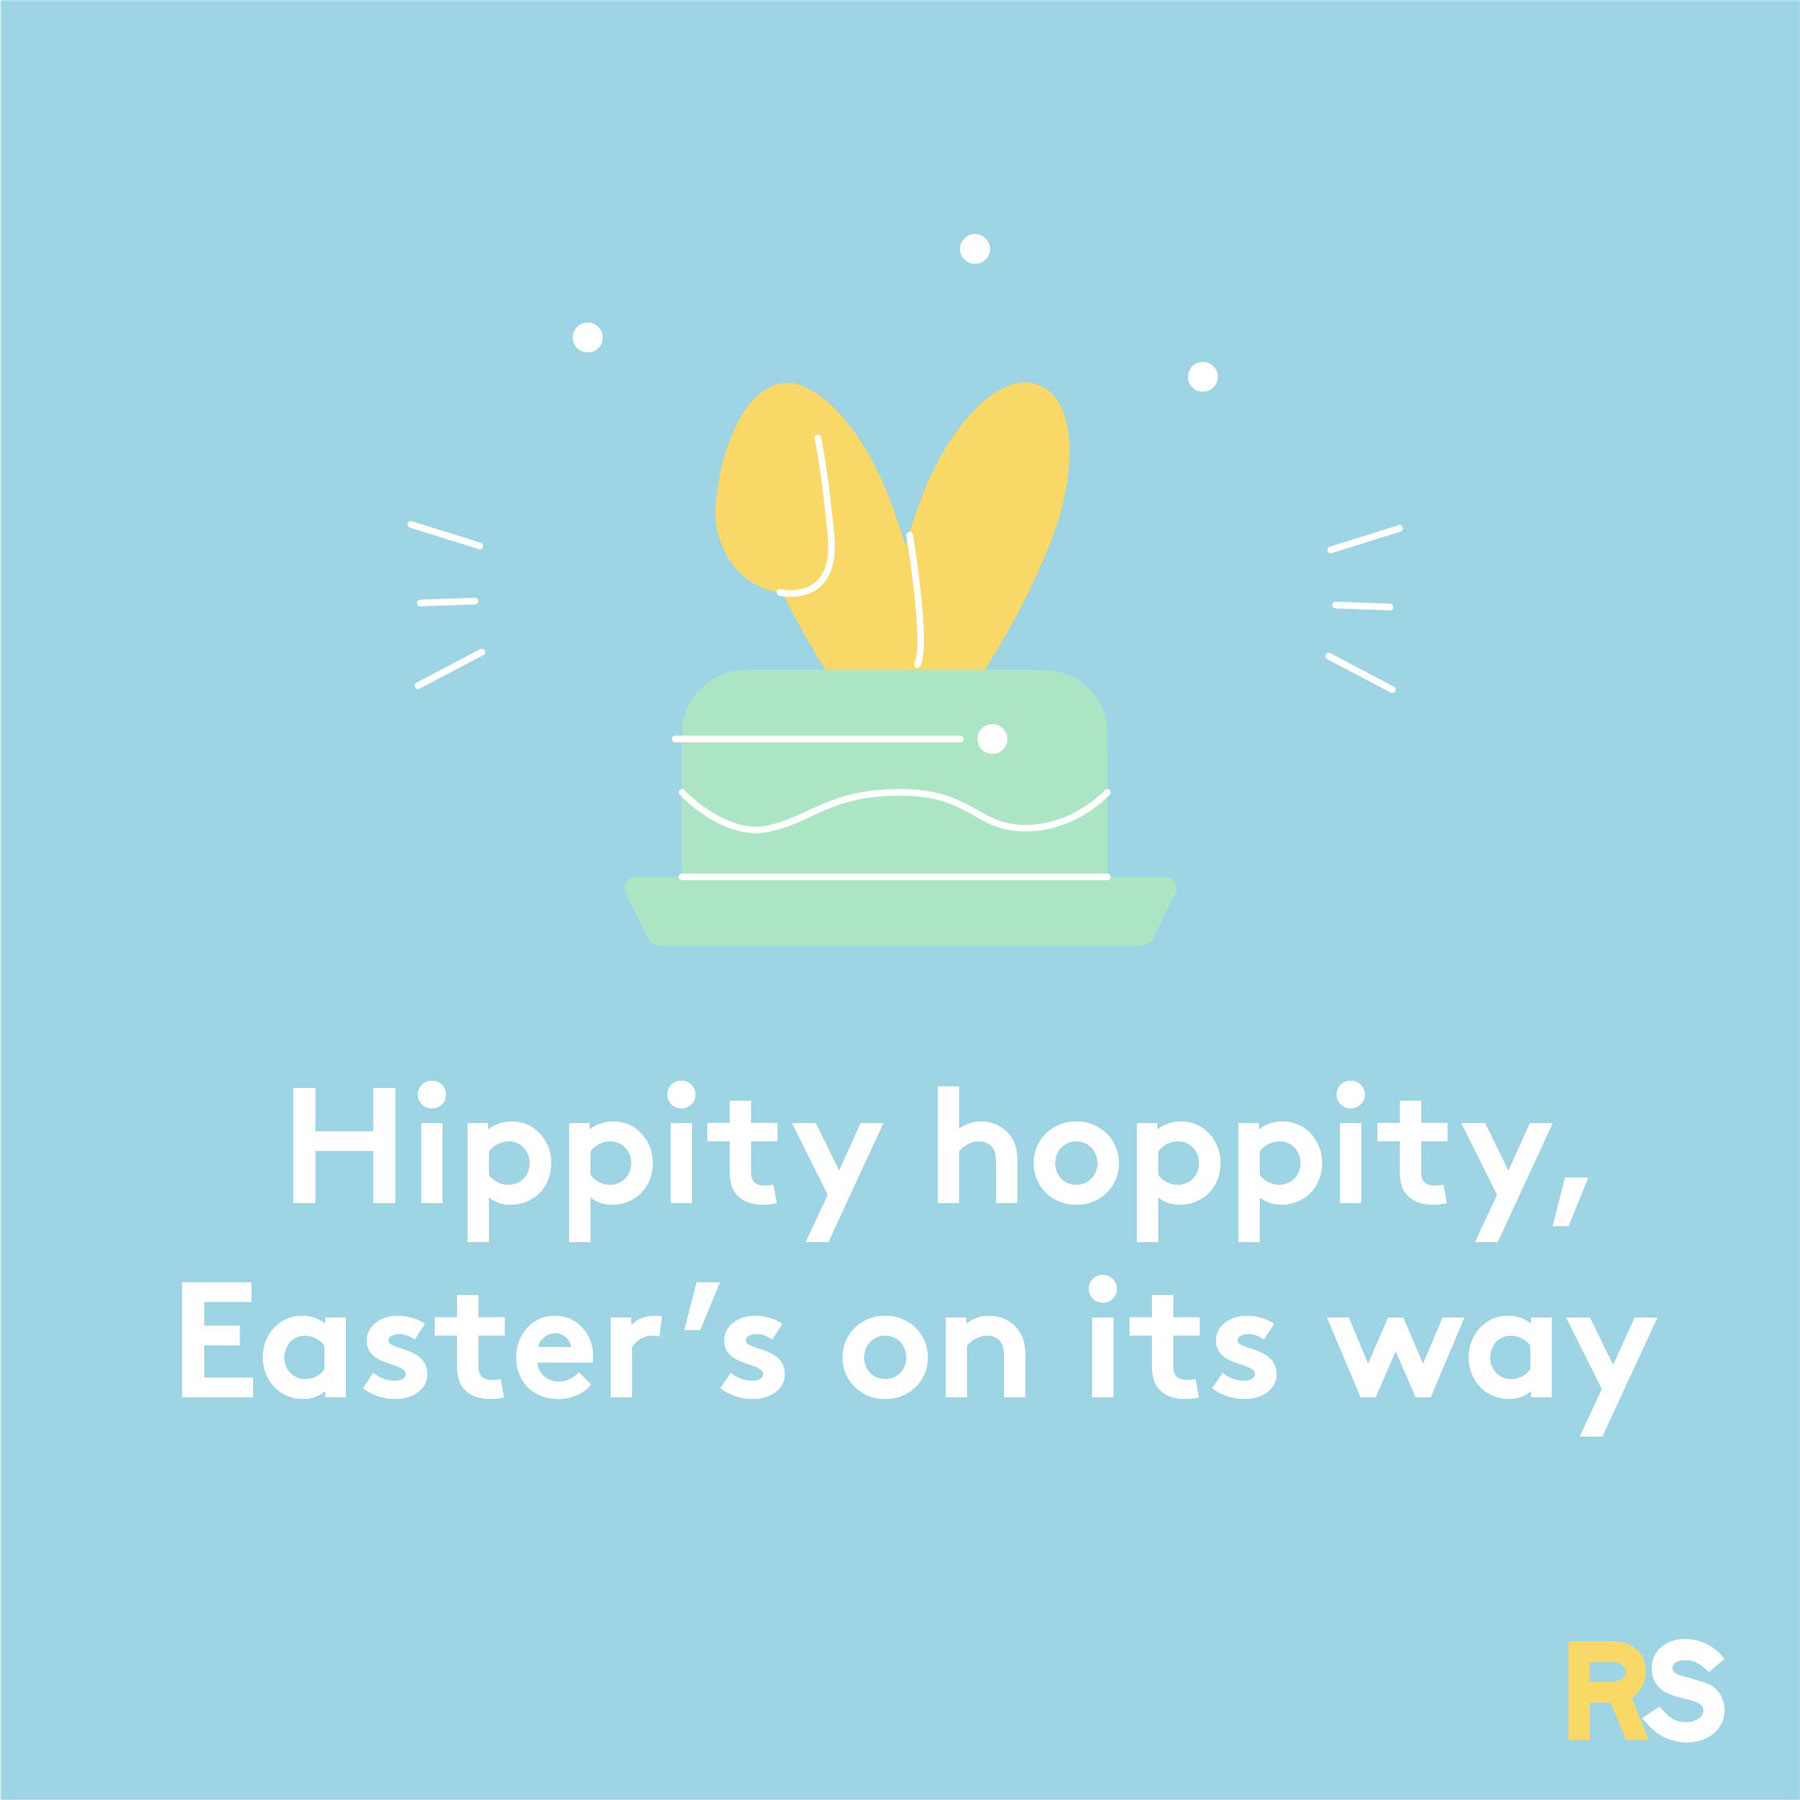 Easter quotes, captions, and messages - Hippity hoppity, Easter's on its way